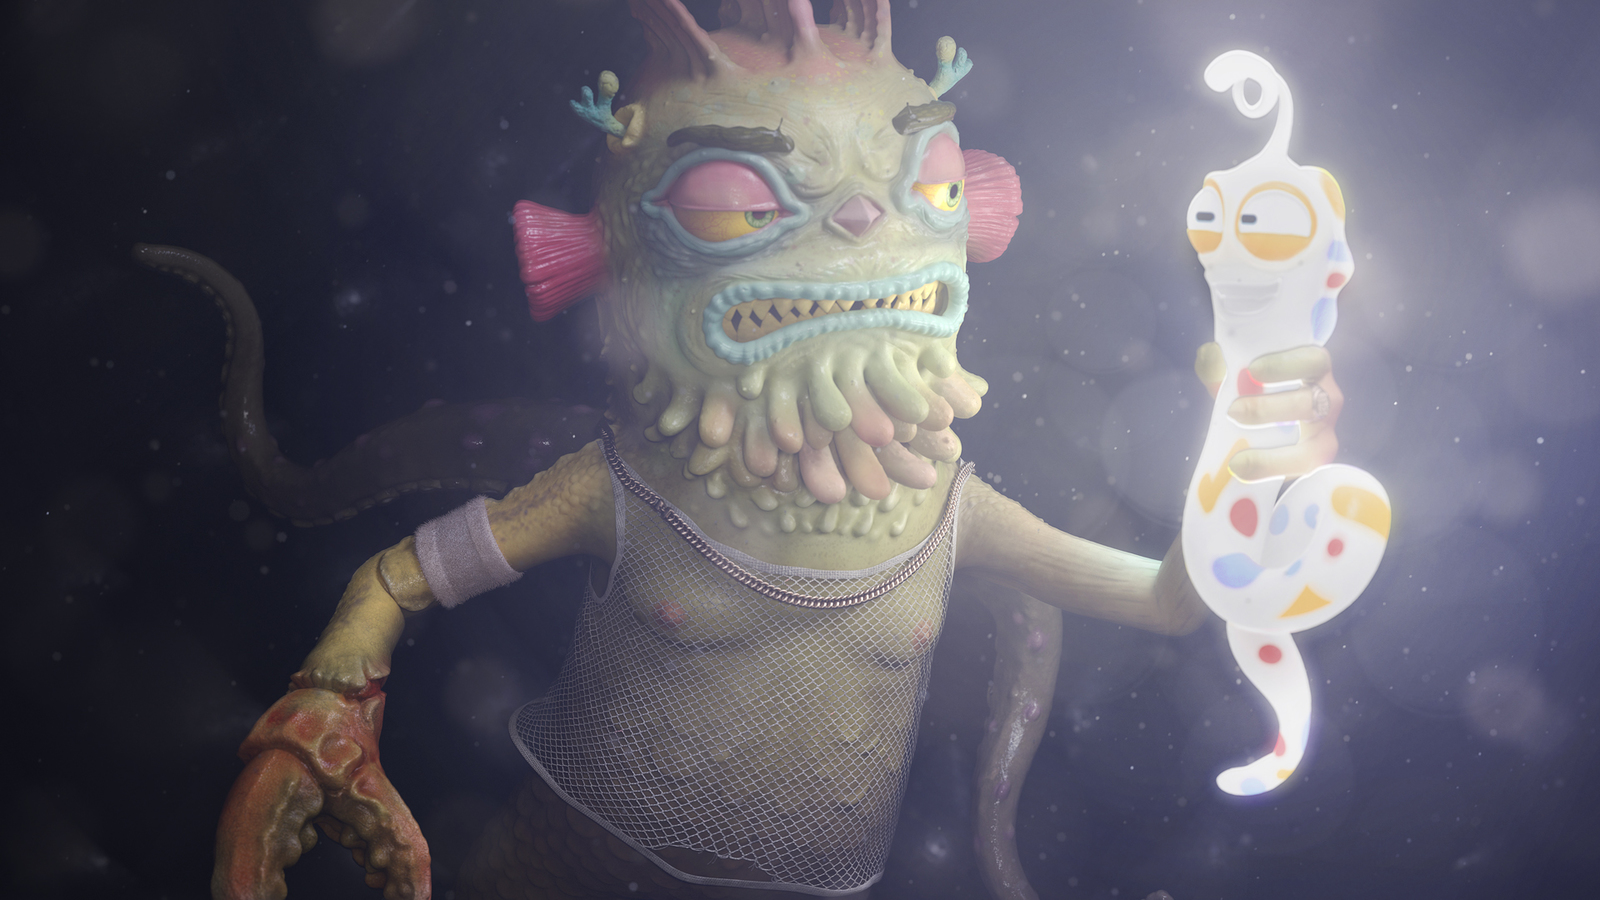 Render of the OG 3D still of underwater, string vest wearing character, with claws, tentacles and ogre style face, who is holding day glo worm charatcer